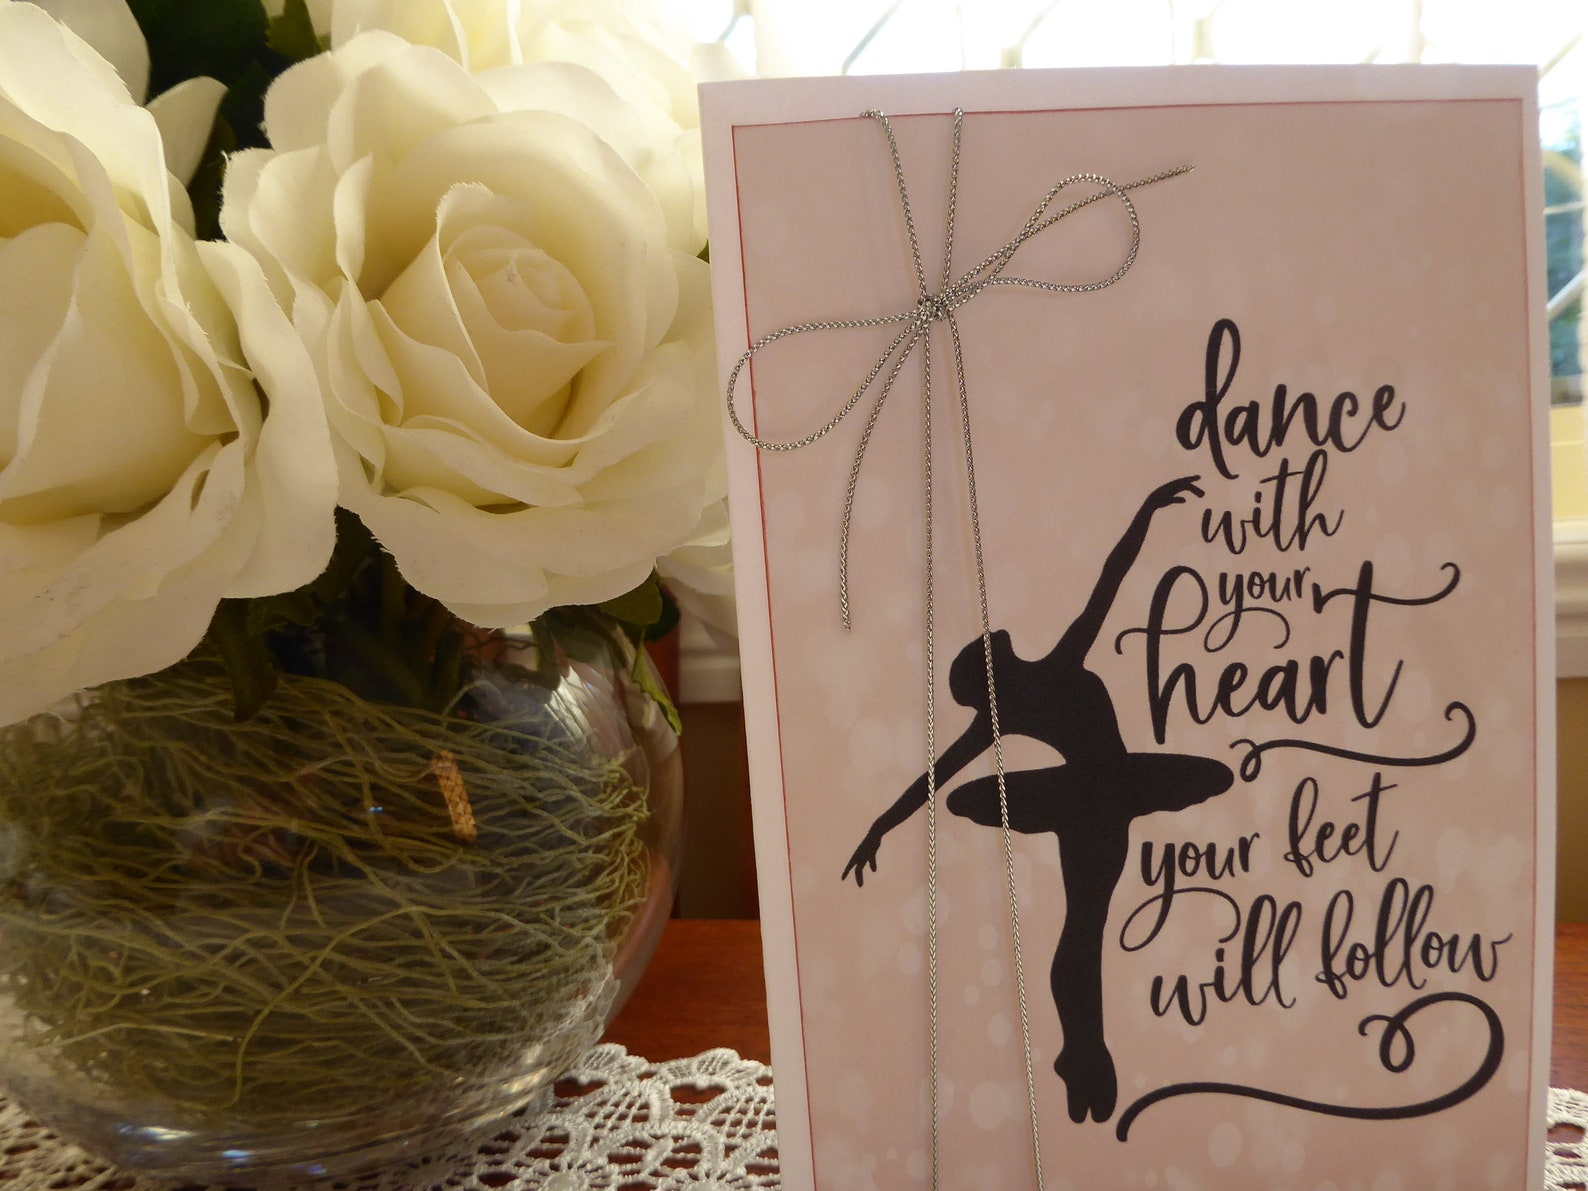 dance with your heart - ballerina card - happy birthday - ballet, ballerina, dance,princess, pointe shoes, ballet feeds my soul